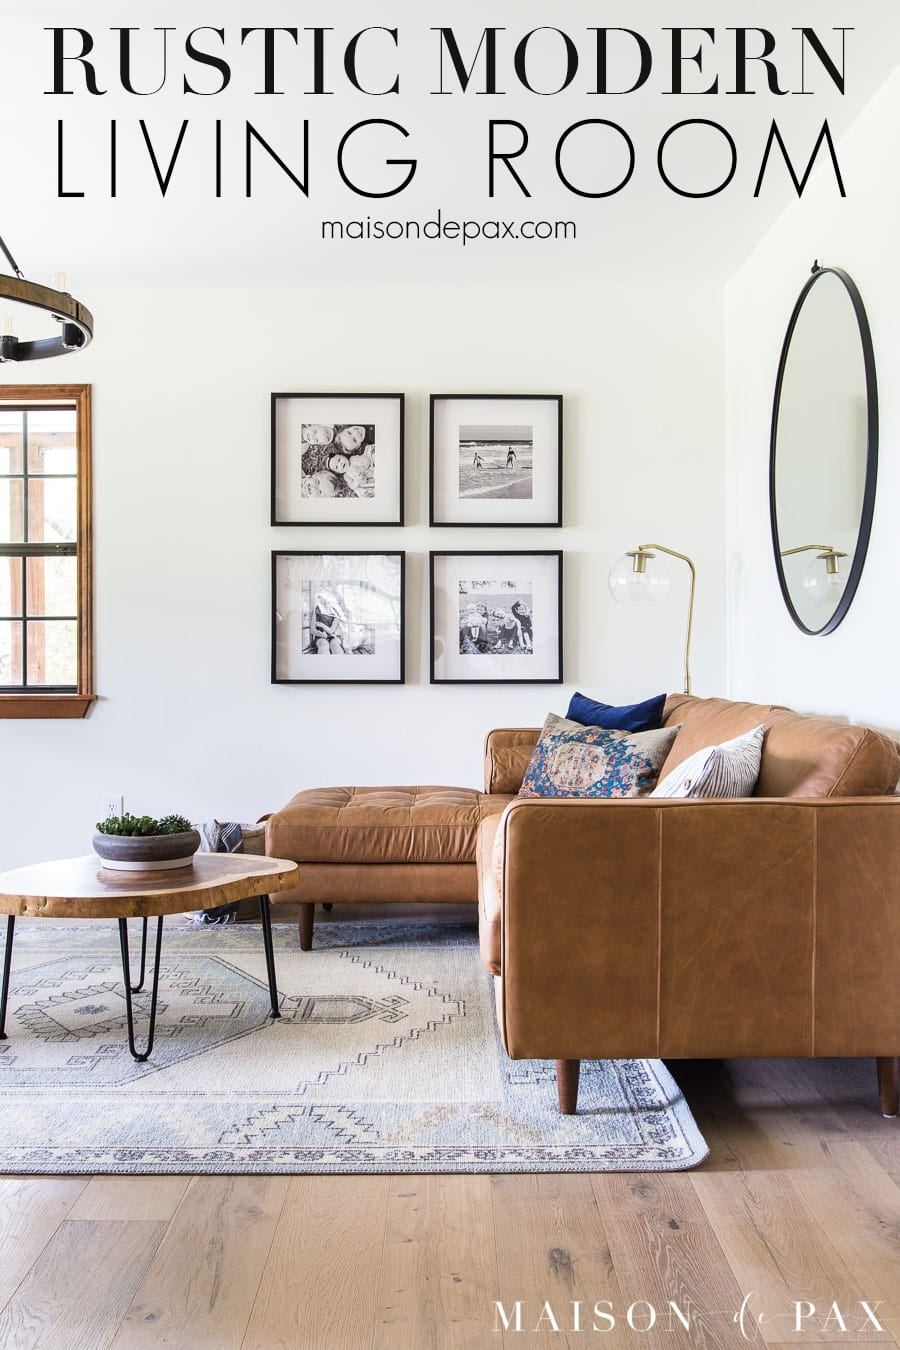 brown leather mid century sofa in rustic modern living room | Maison de Pax